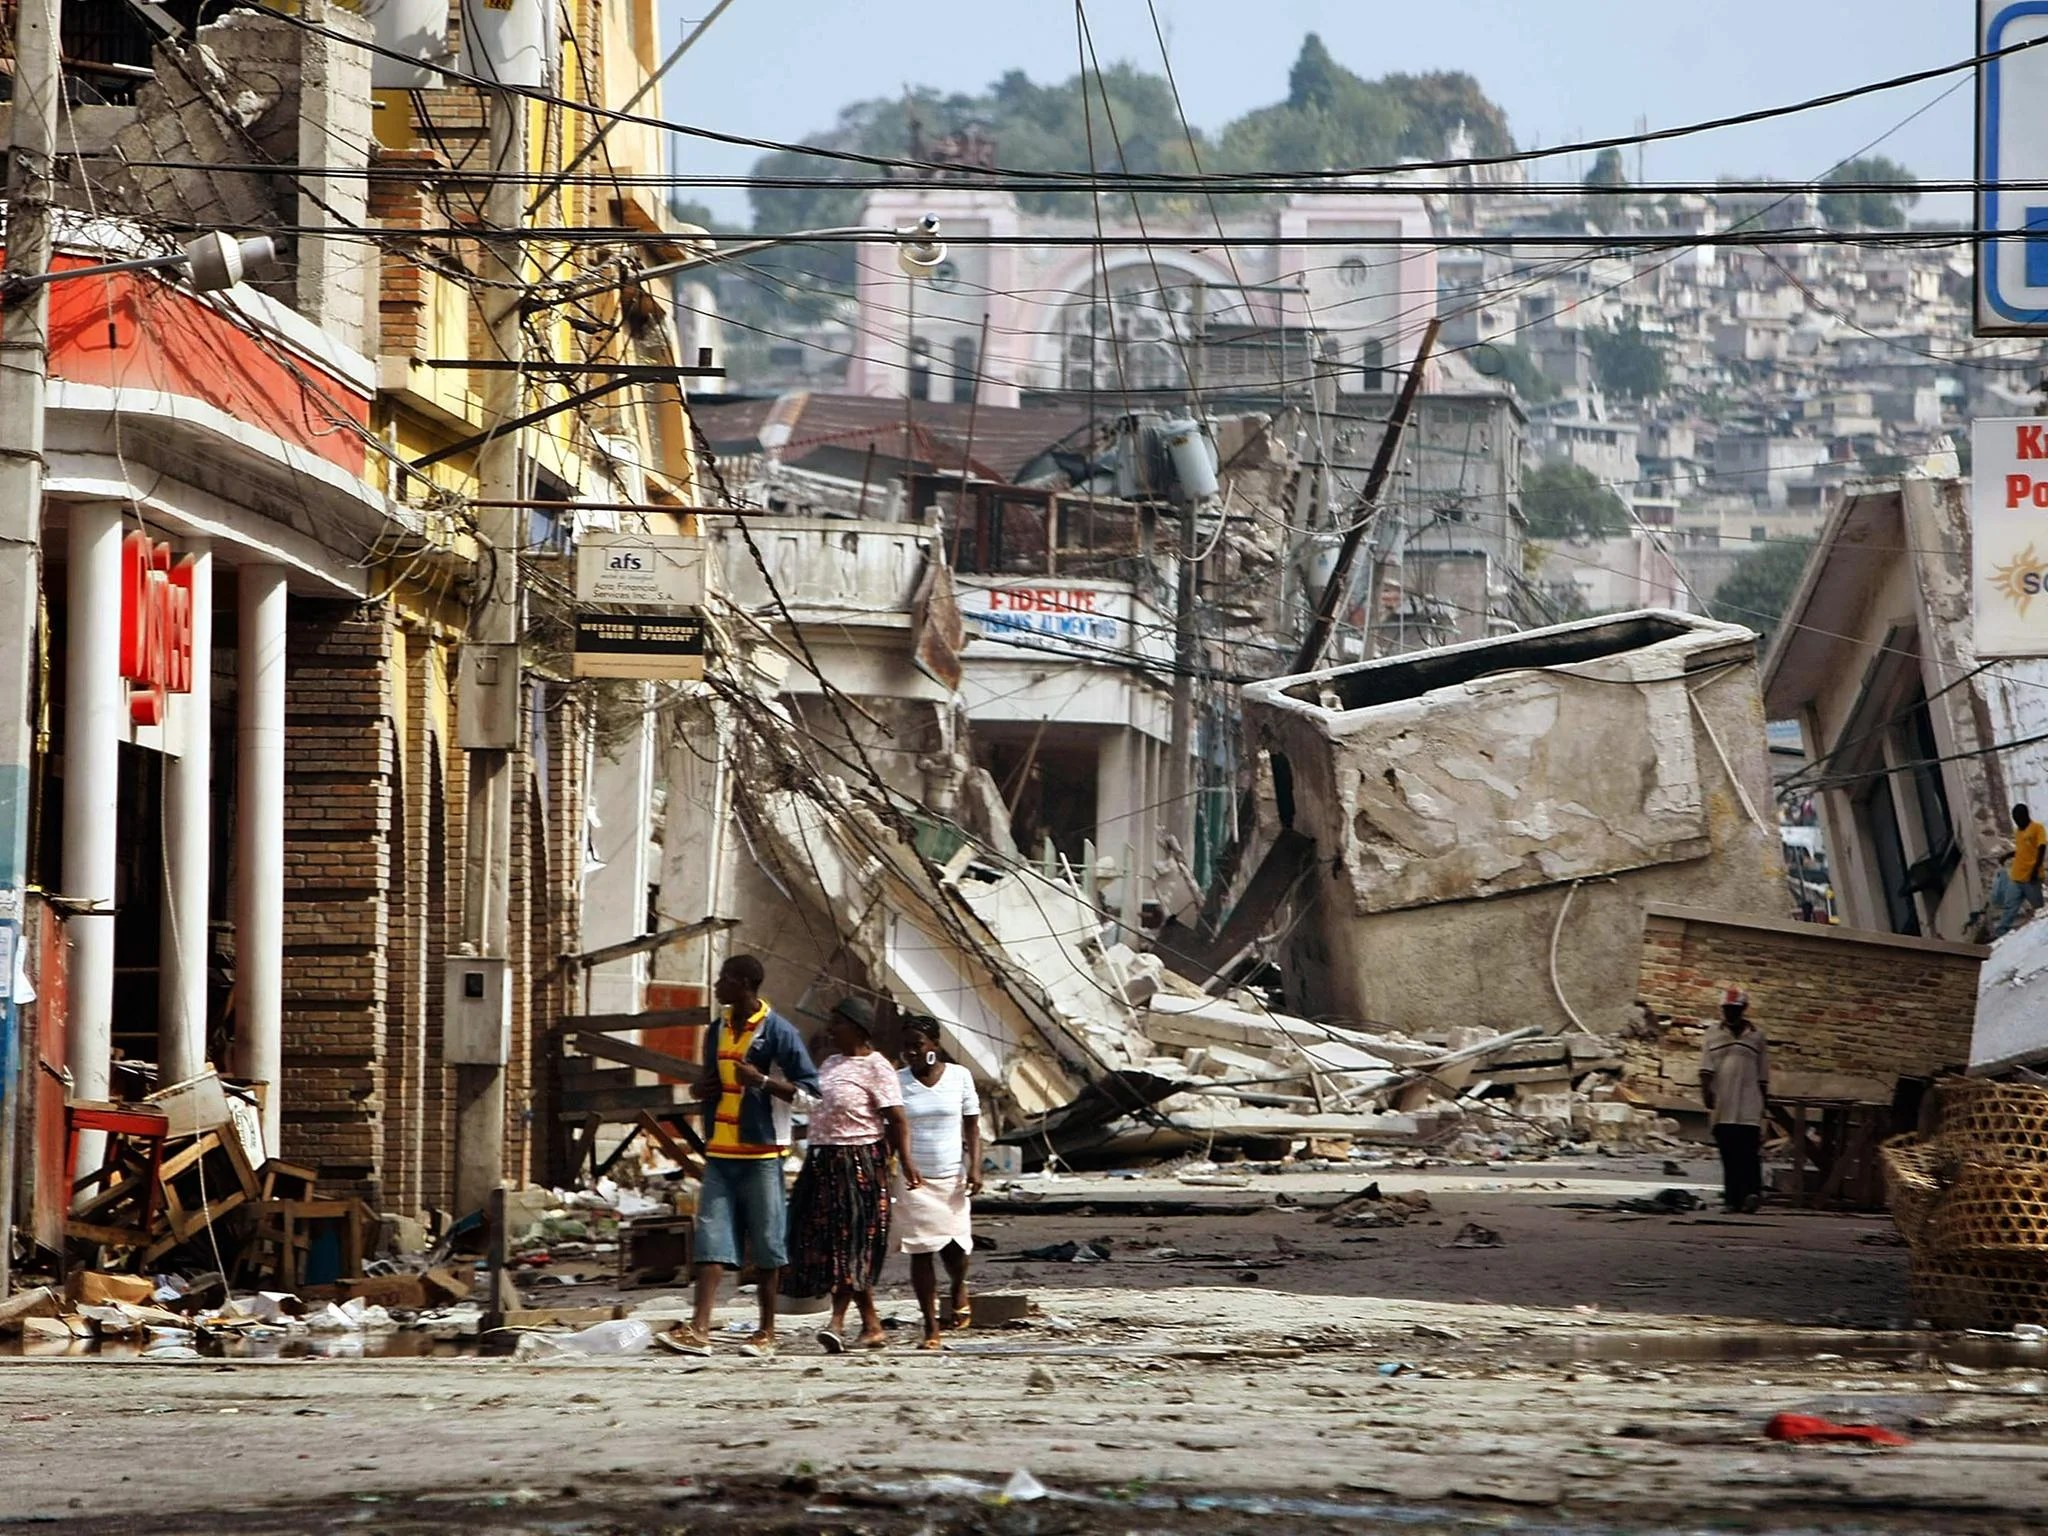 Haiti Suspends Oxfam Great Britain Aid Work Pending Investigation Intoual Misconduct